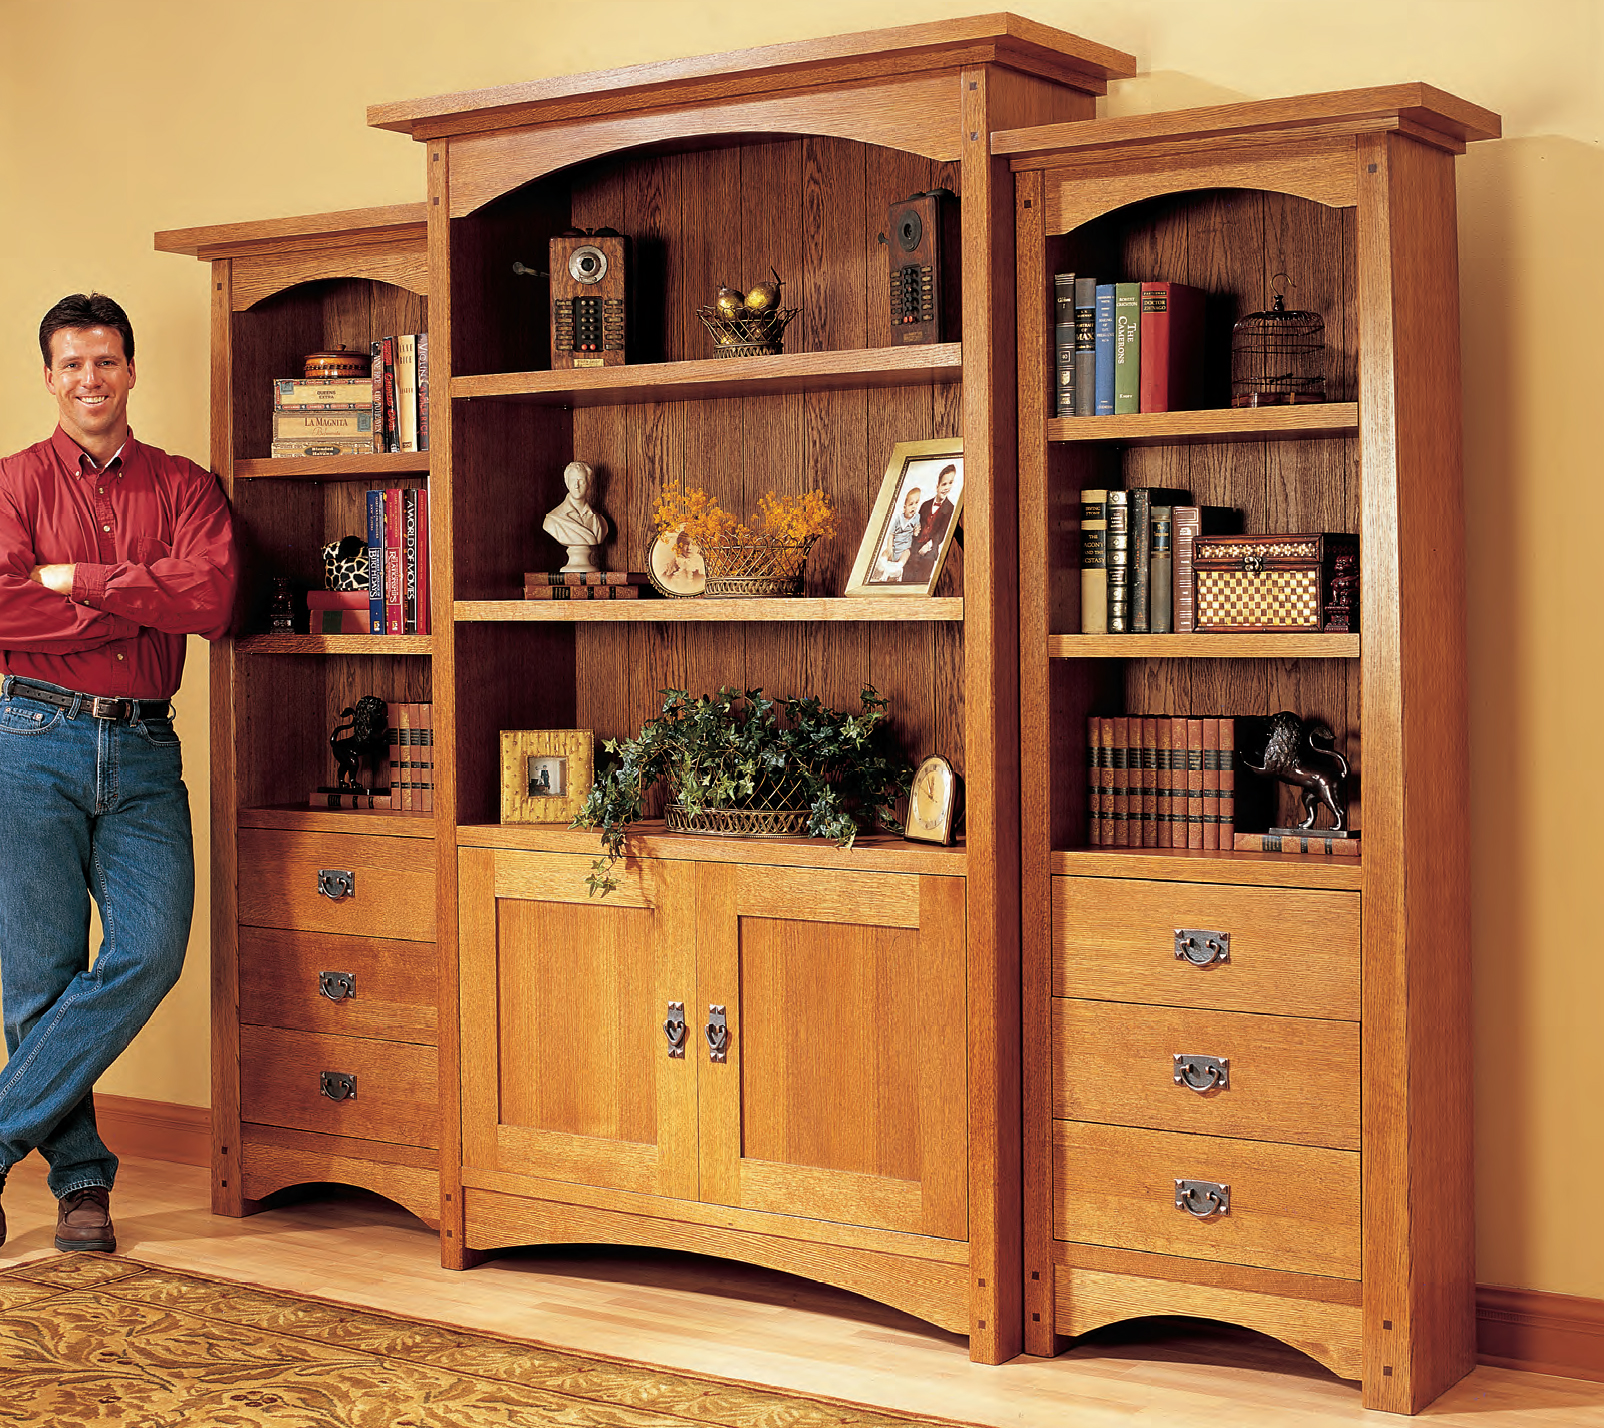 Craftsman Bookcase Project Download | Popular Woodworking ...